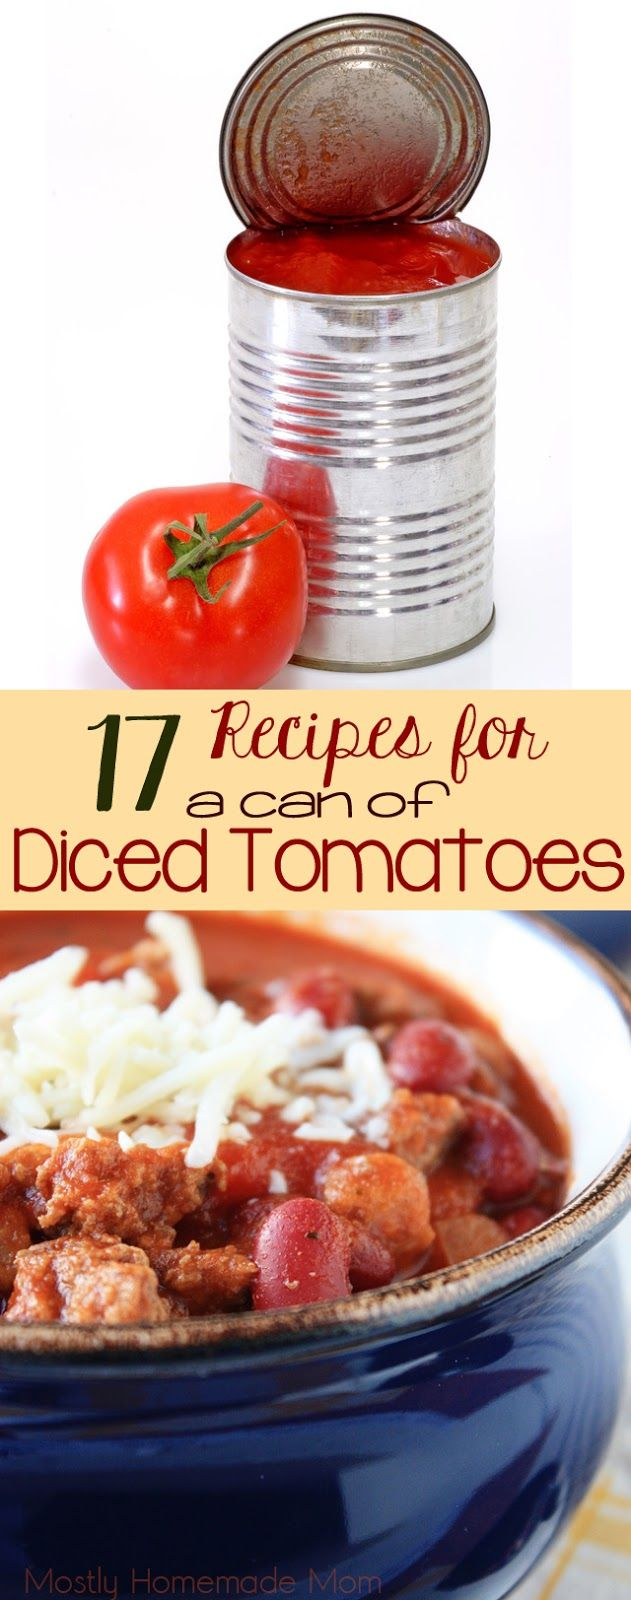 17 Recipes for a Can of Diced Tomatoes - Got some canned tomatoes hanging out in your pantry?? You NEED this list!